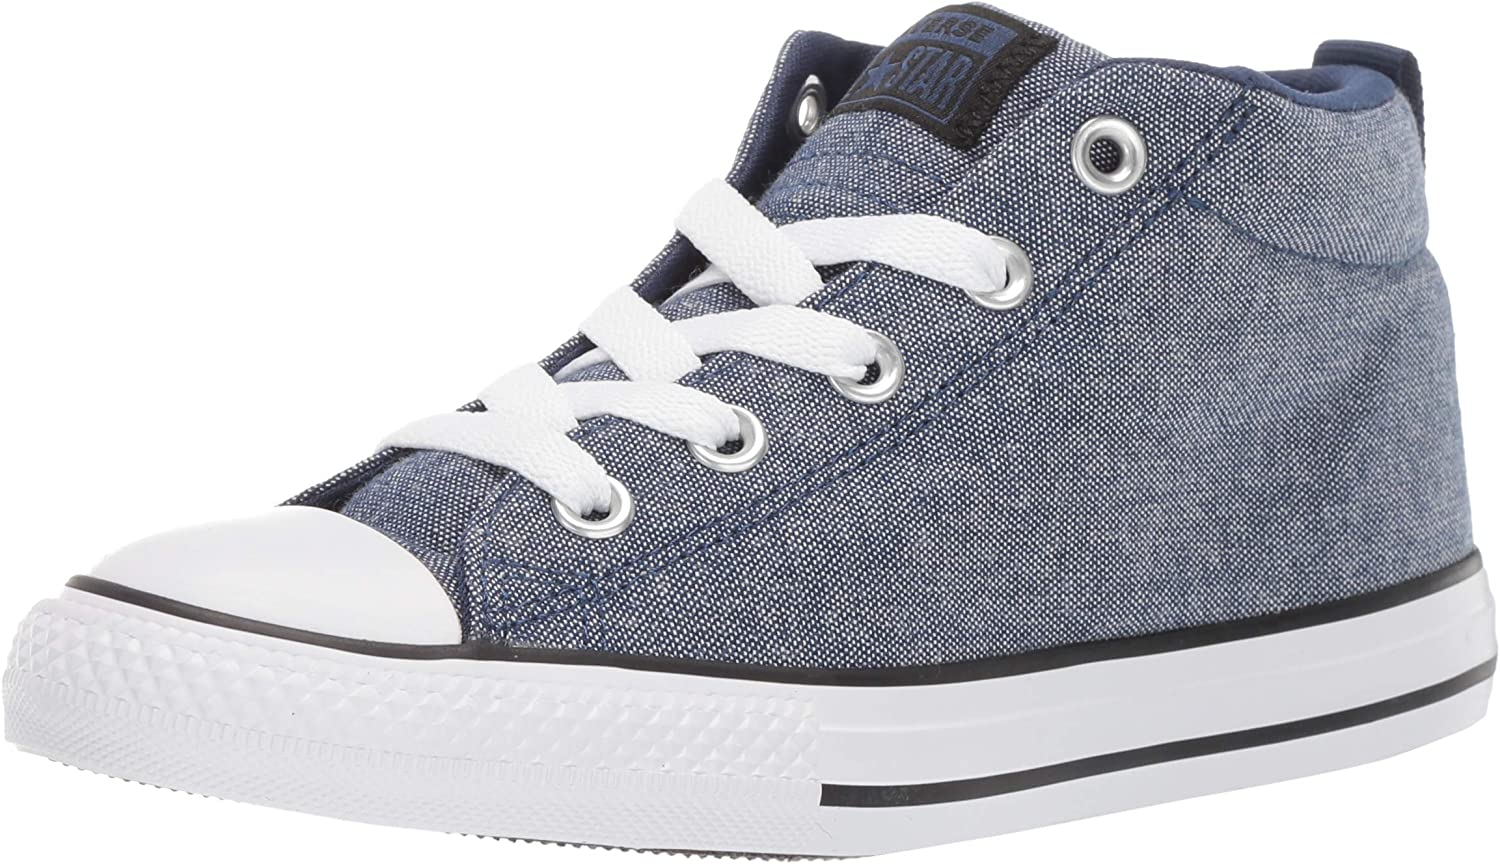 Converse Unisex-Child Kids' Chuck Taylor All Star Street Knotted Laces Mid Top Sneaker